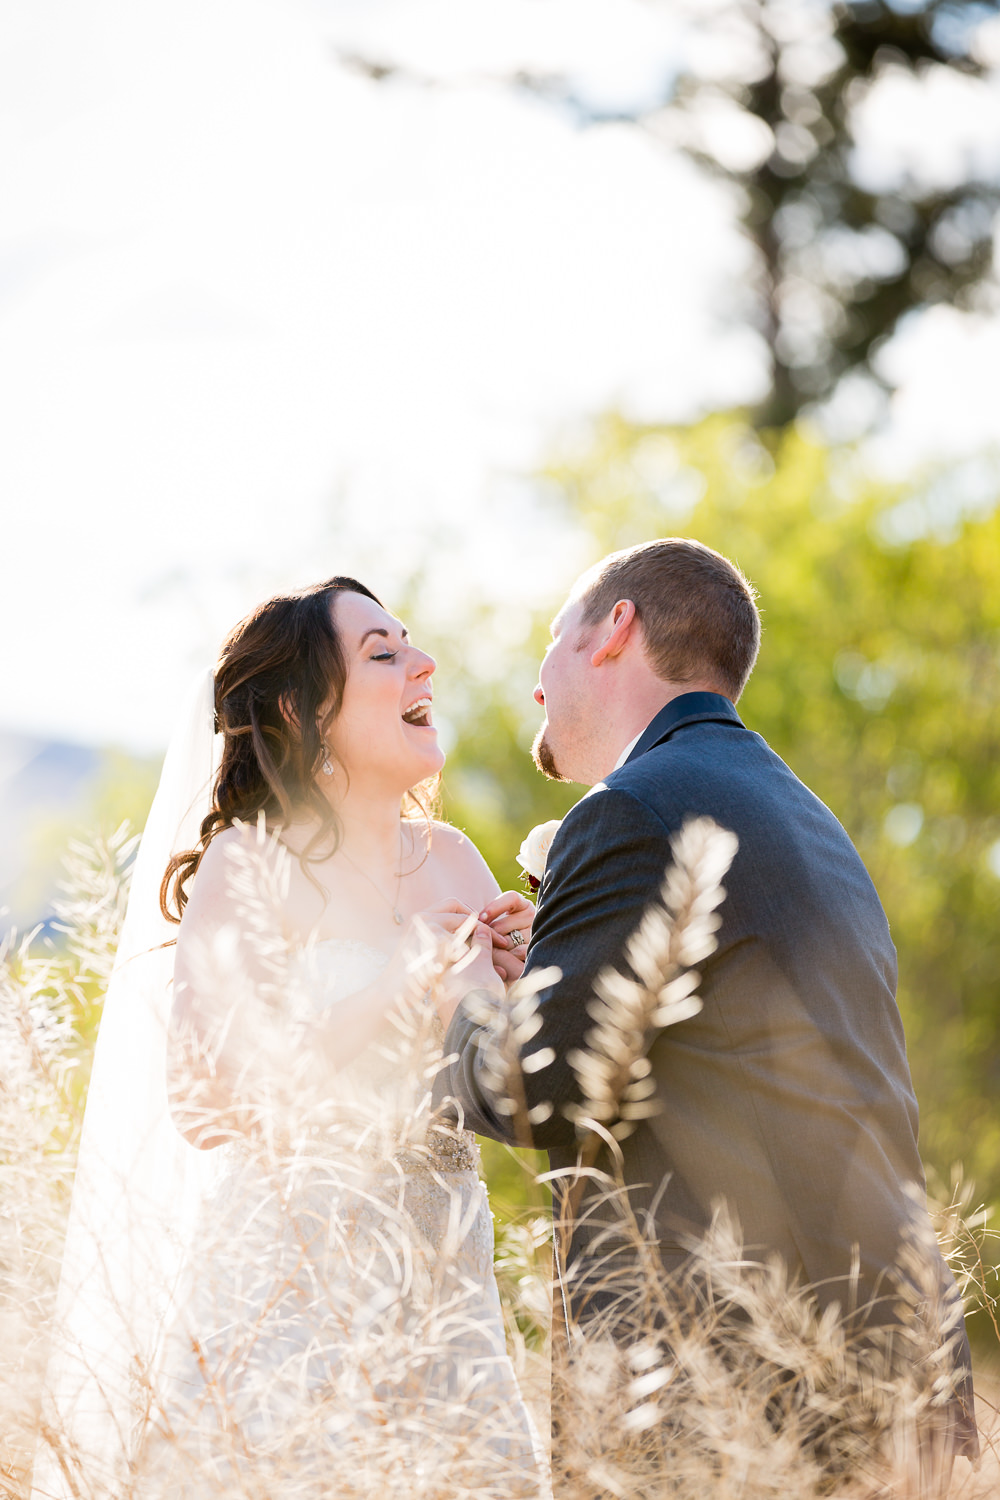 heritage-hall-missoula-montana-bride-groom-laughing-in-field.jpg